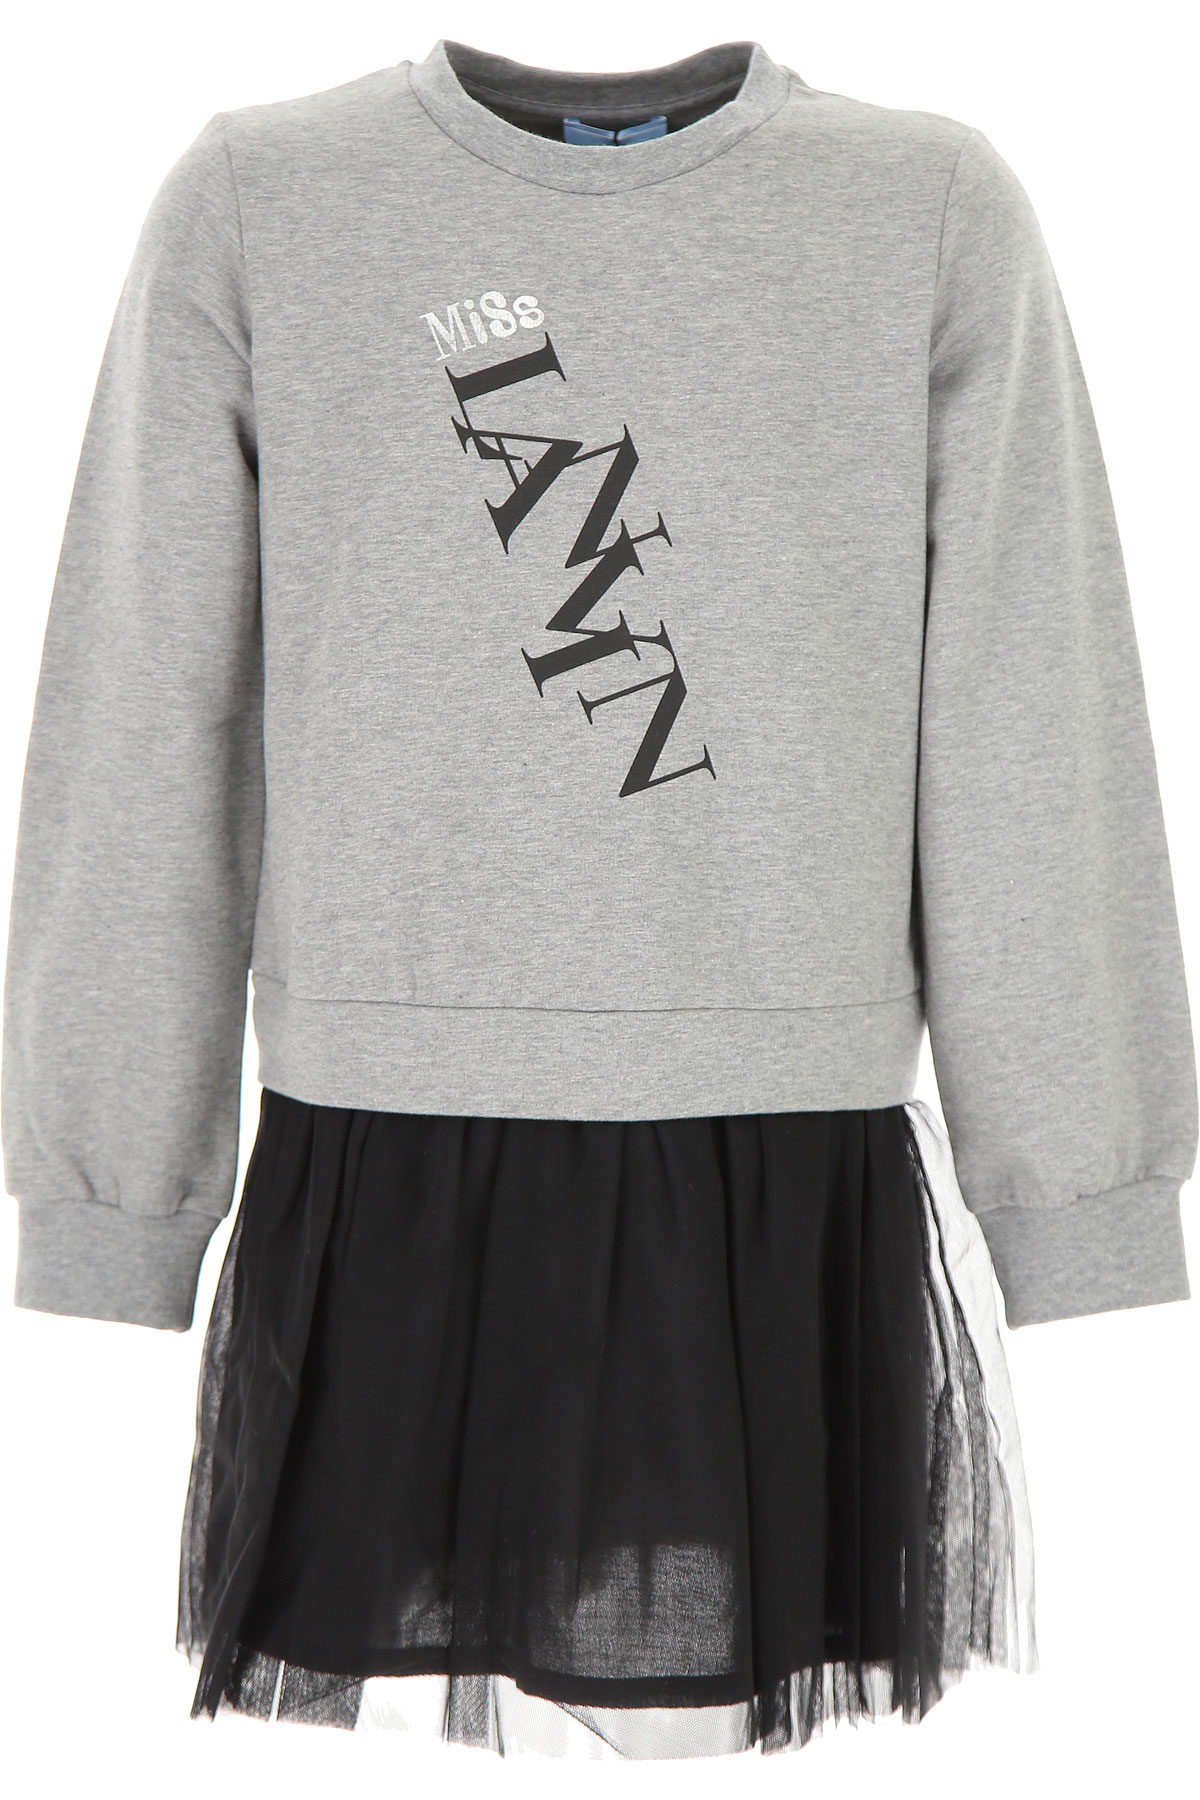 Lanvin Girls Dress On Sale, Grey, Cotton, 2019, 10Y 12Y 2Y 4Y 6Y 8Y